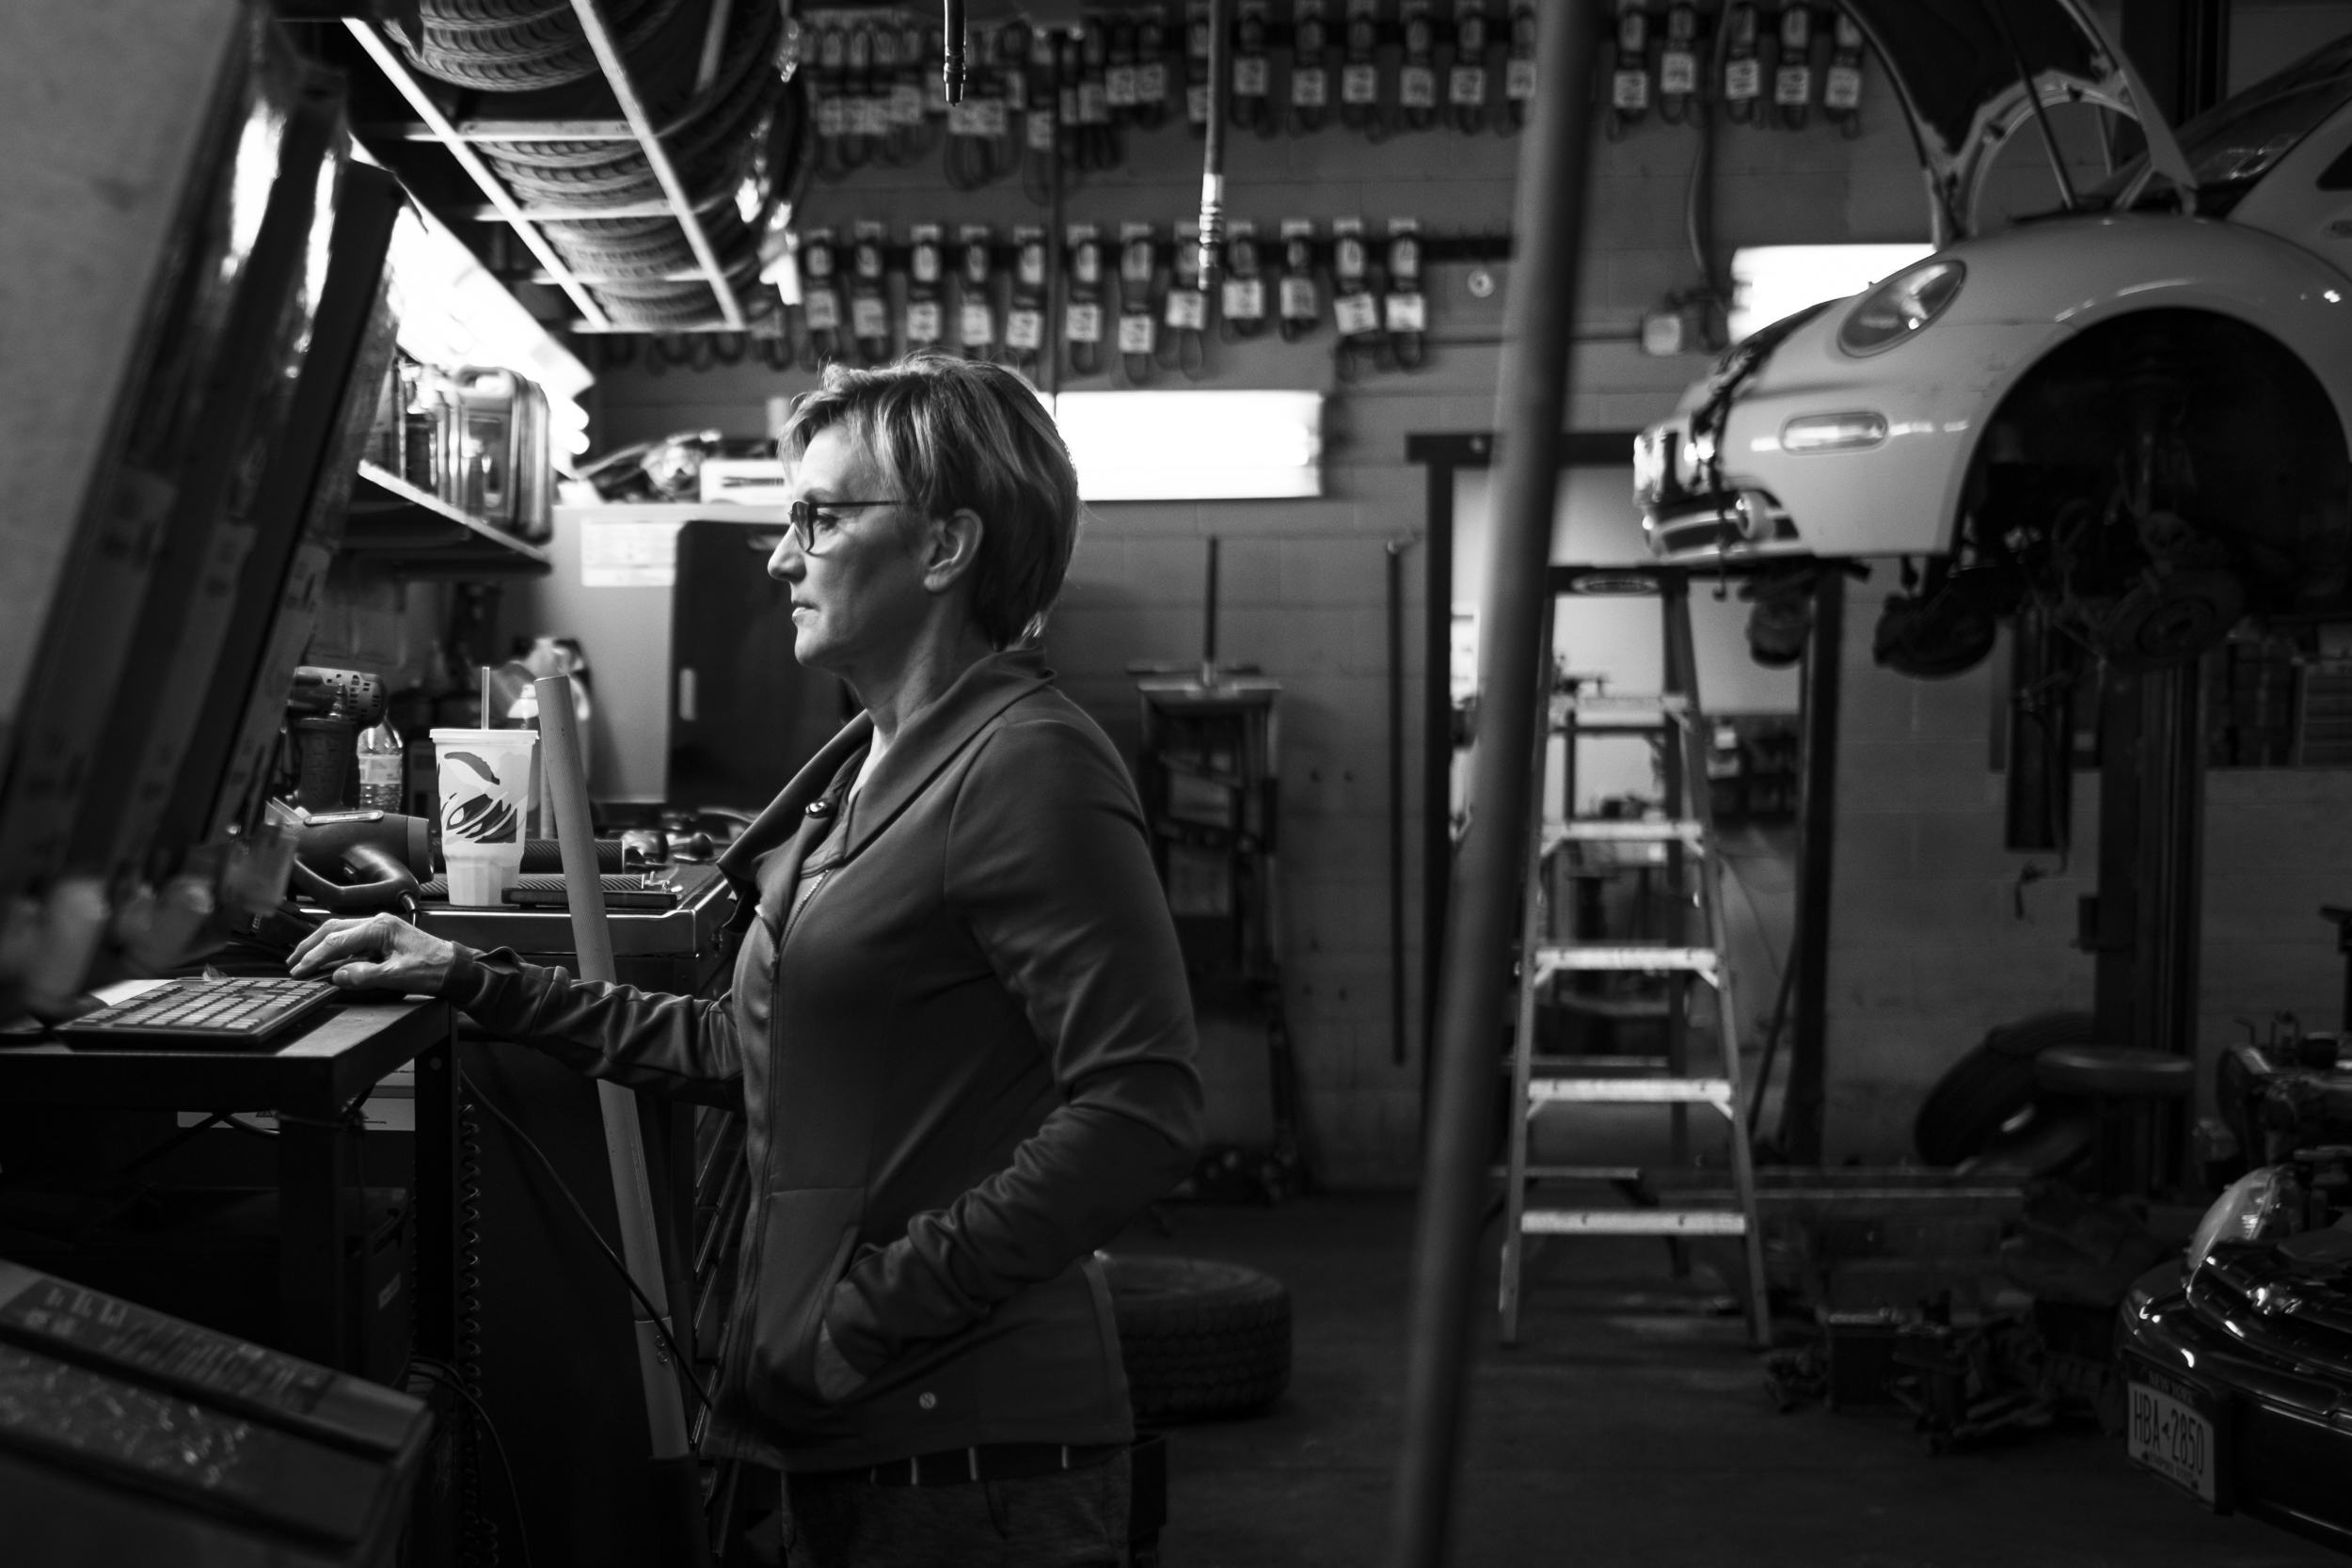 Cretaro first noticed her Parkinson's symptoms while at work. She and her husband, Mike Cretaro, have owned an Auto Service Center in North Syracuse for more than 30 years. In 2016, when Karen was first diagnosed with Parkinson's disease, the couple decided they would try to transition out of the business by finding someone to take it over. Nowadays, Karen visits the auto center about once a week and makes sure the new soon-to-be-owners are doing OK.